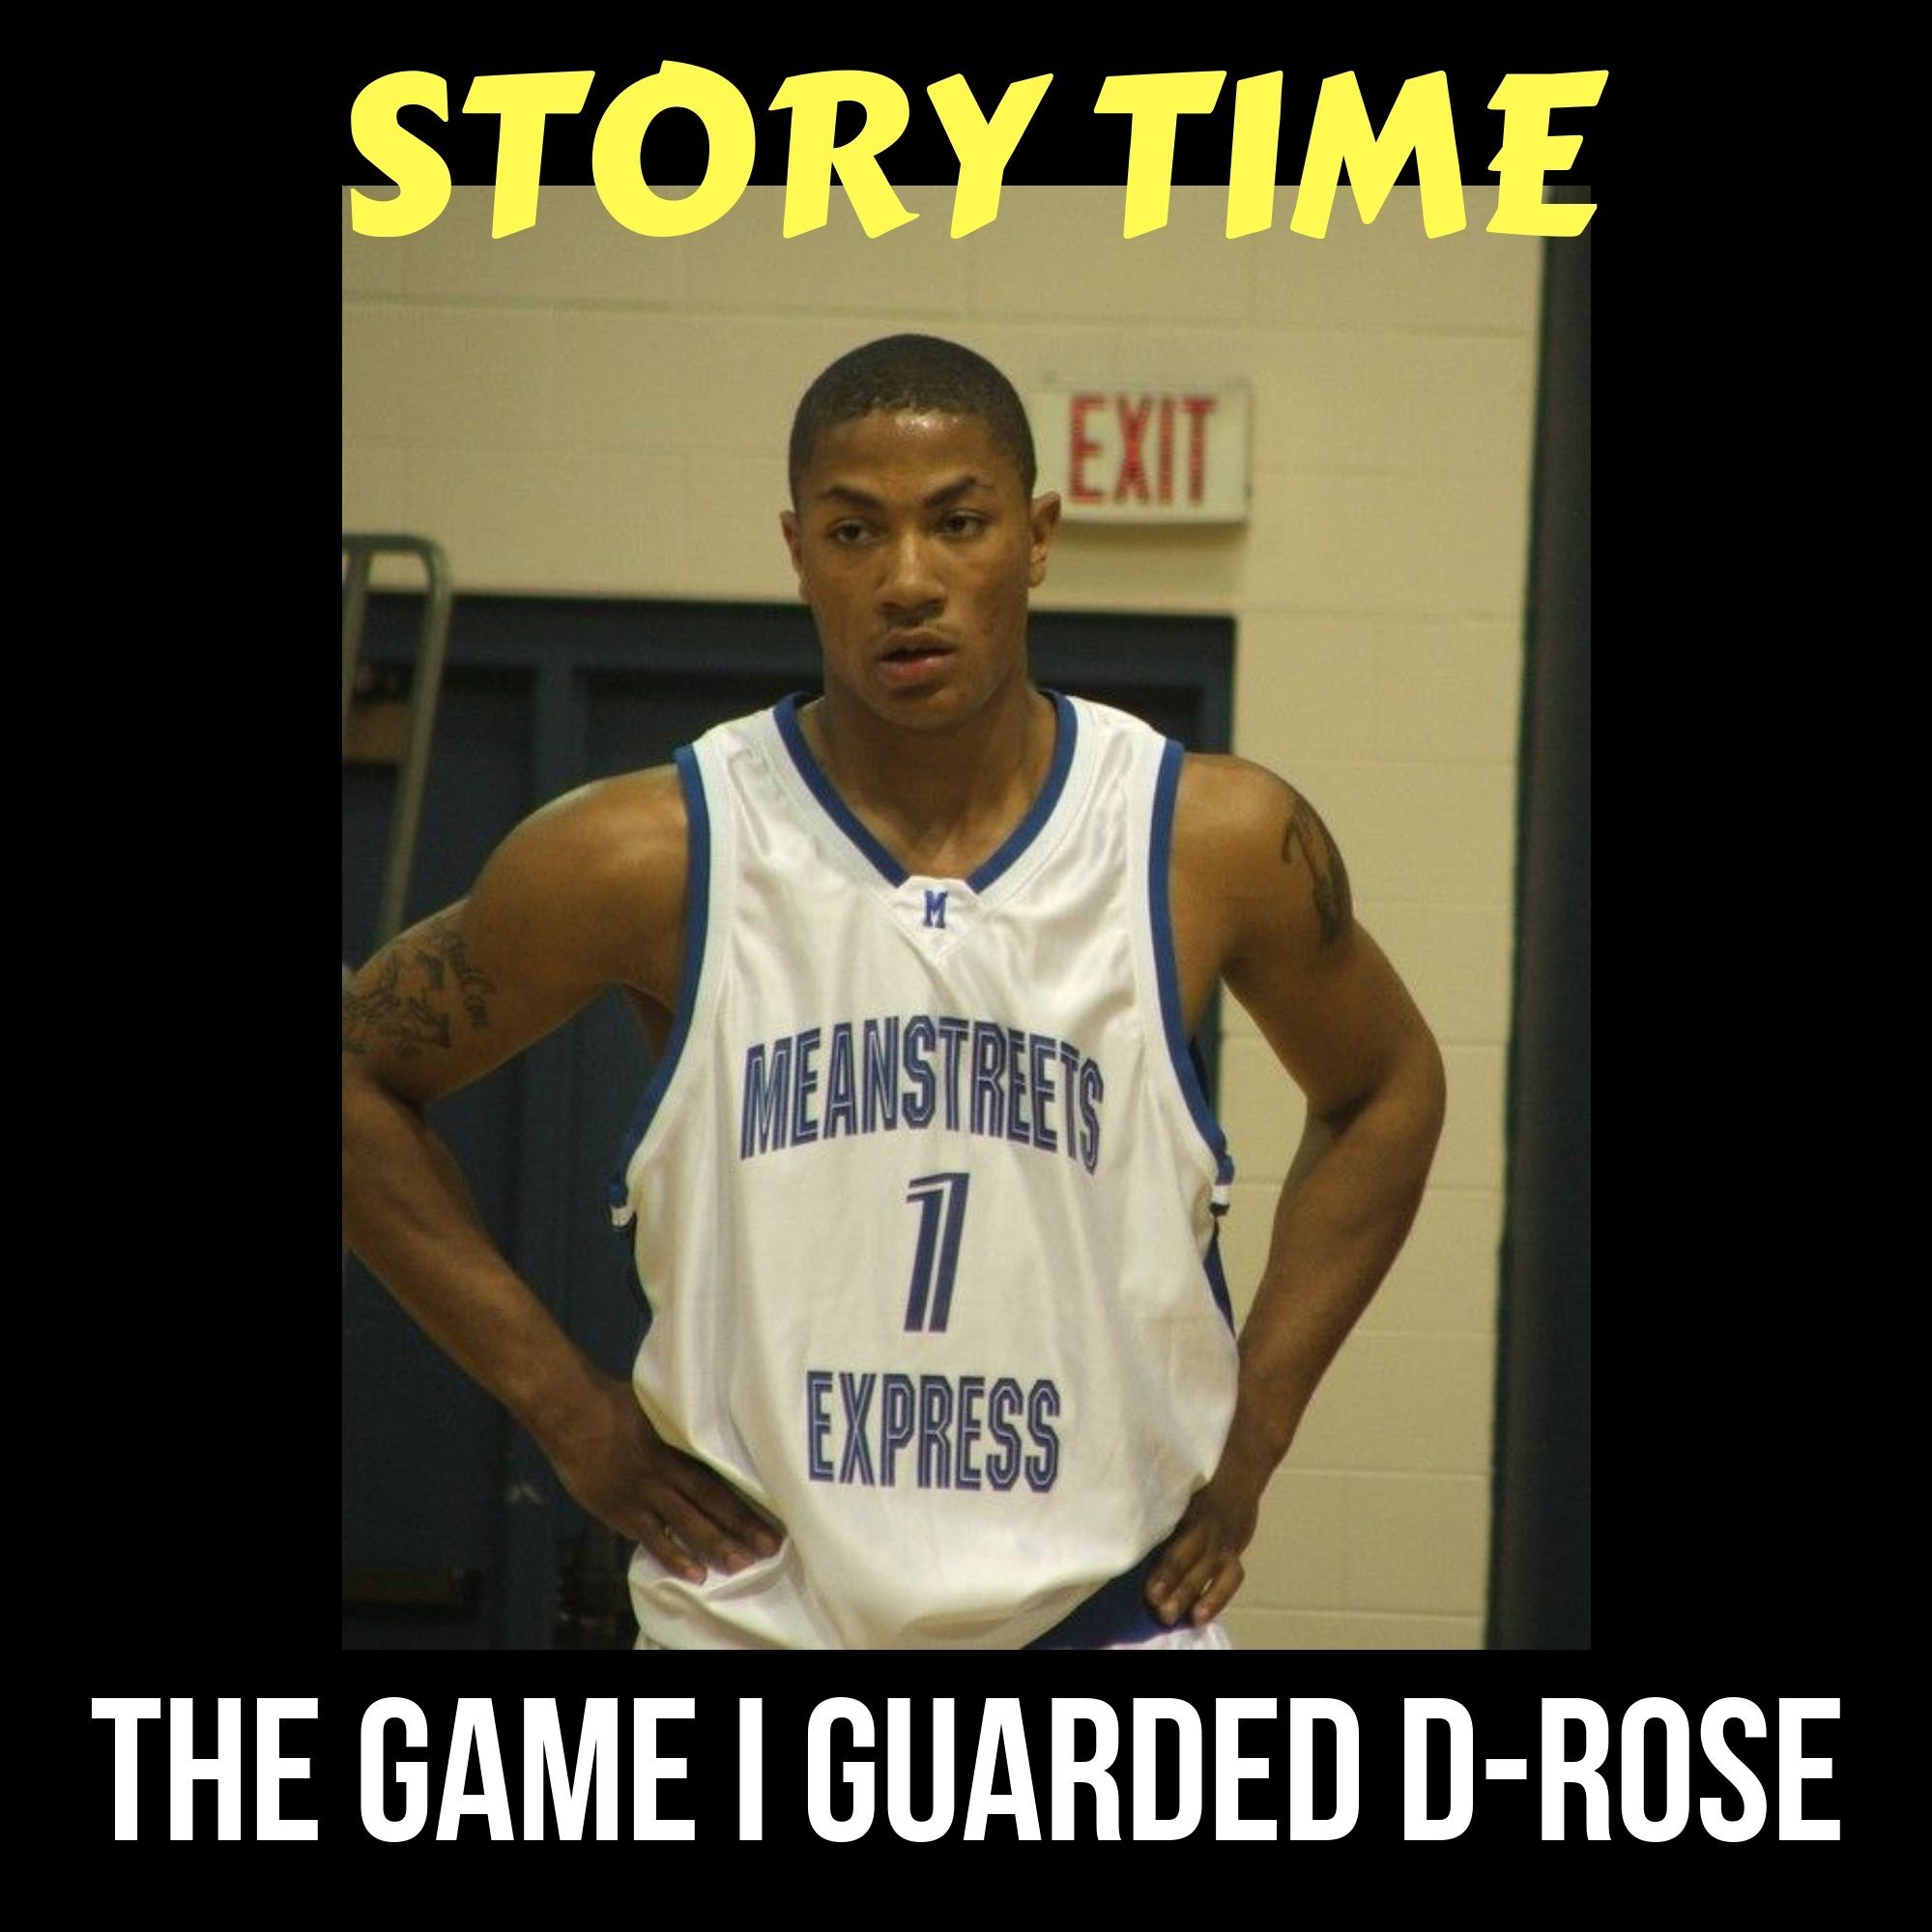 The Game I Guarded Derrick Rose